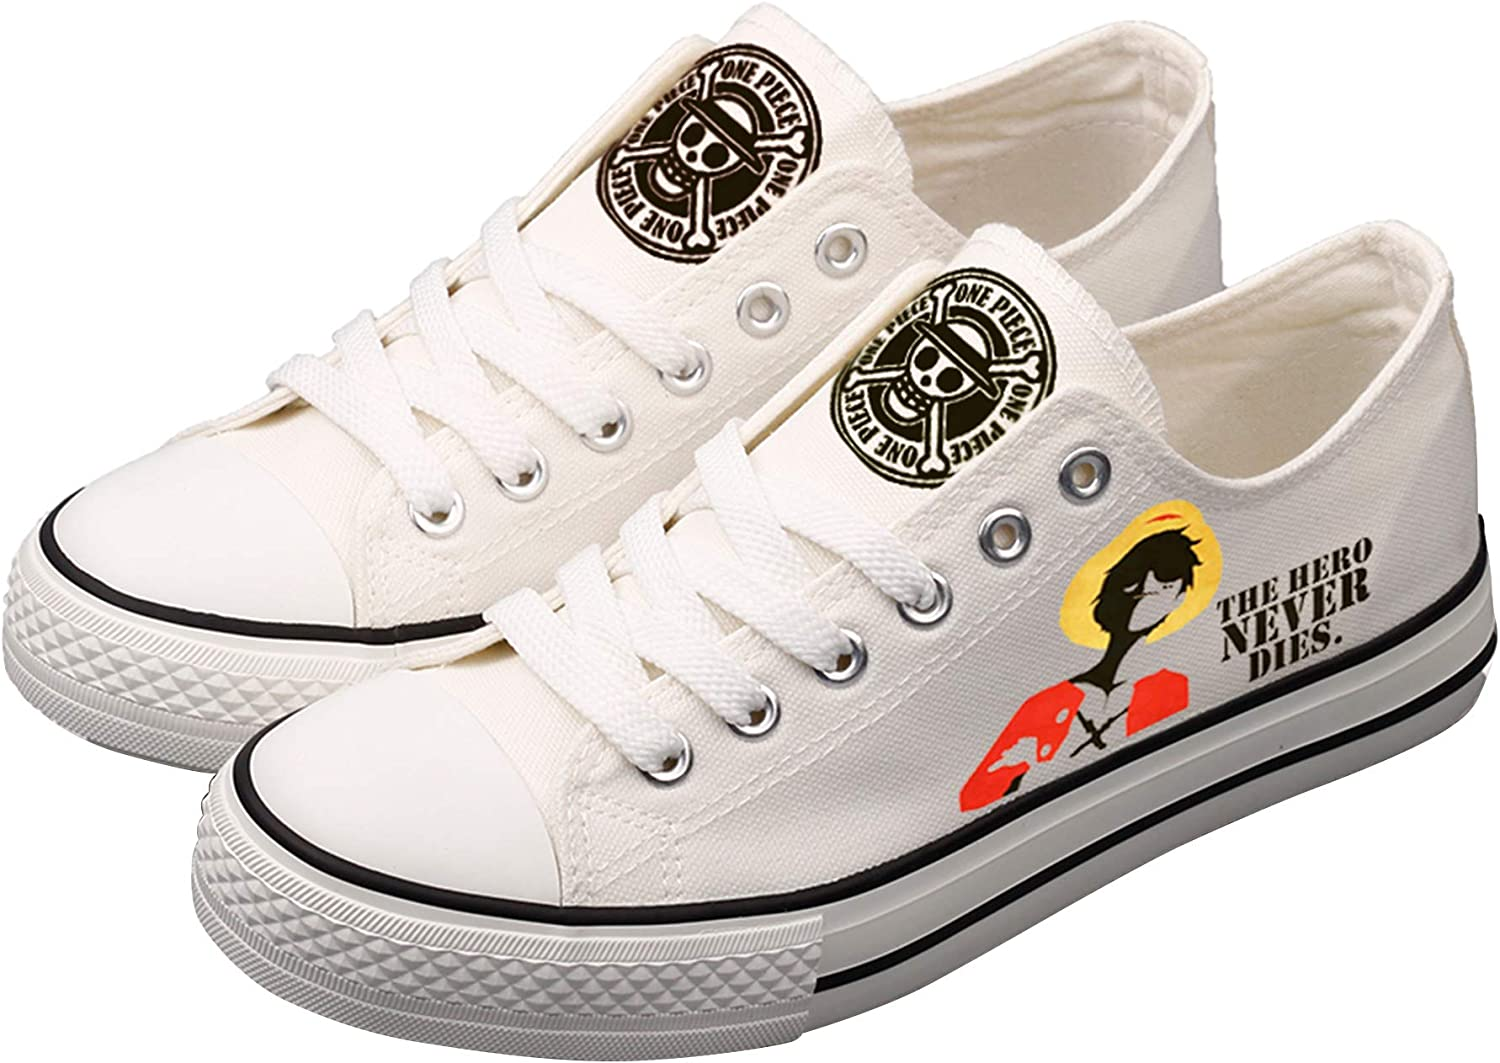 BEGOOTION Hand-Painted Canvas shoes Printing Cosplay Canvas shoes ONE Piece Unisex Designs Casual Low Cut Sneakers